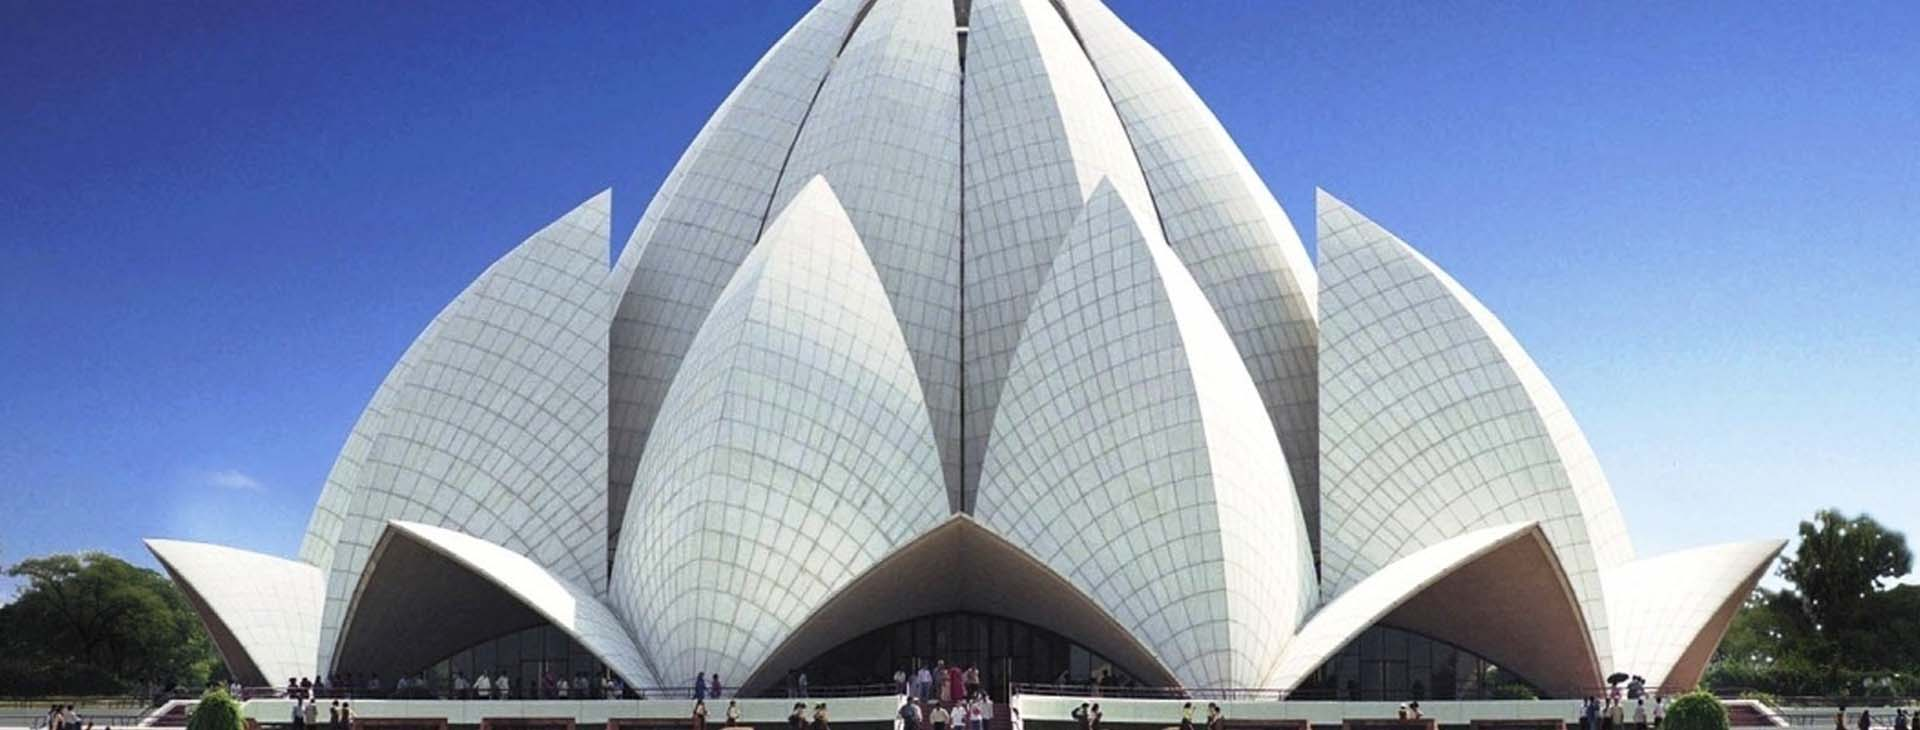 Delhi sightseeing tour by bus